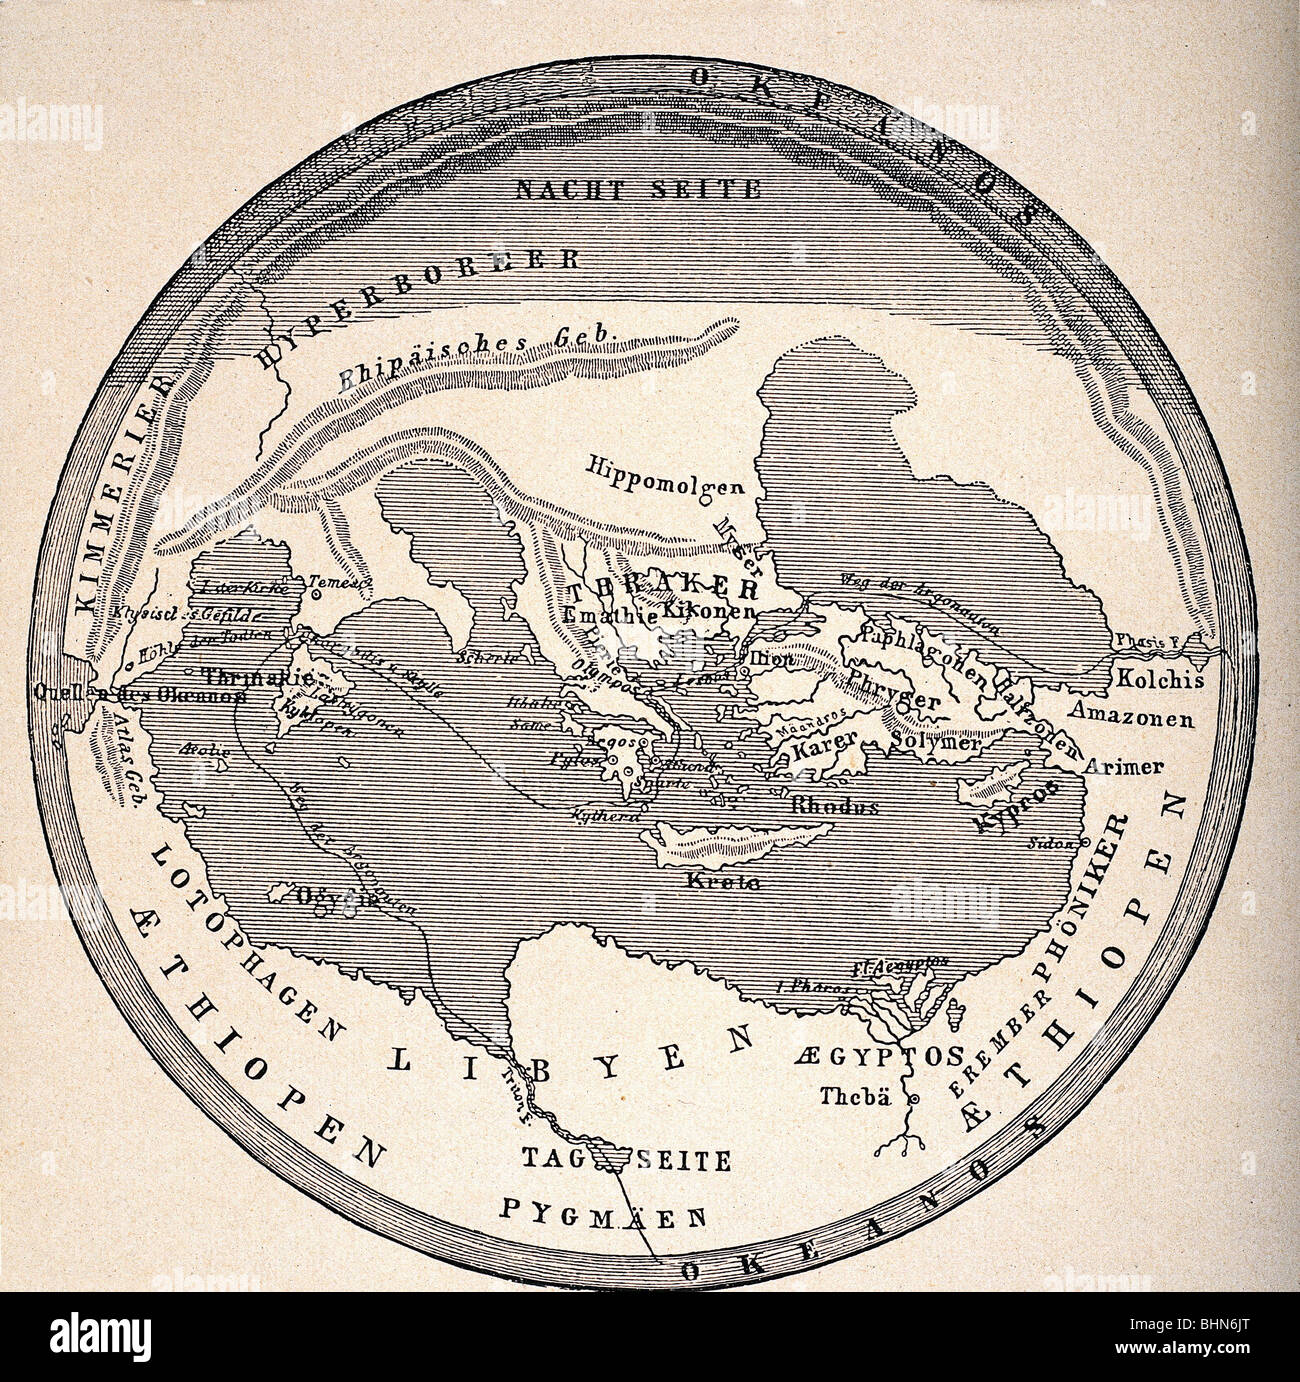 Cartography world maps ancient world earth map after homer cartography world maps ancient world earth map after homer reconstruction 19th century europe africa asia mediterranea gumiabroncs Images